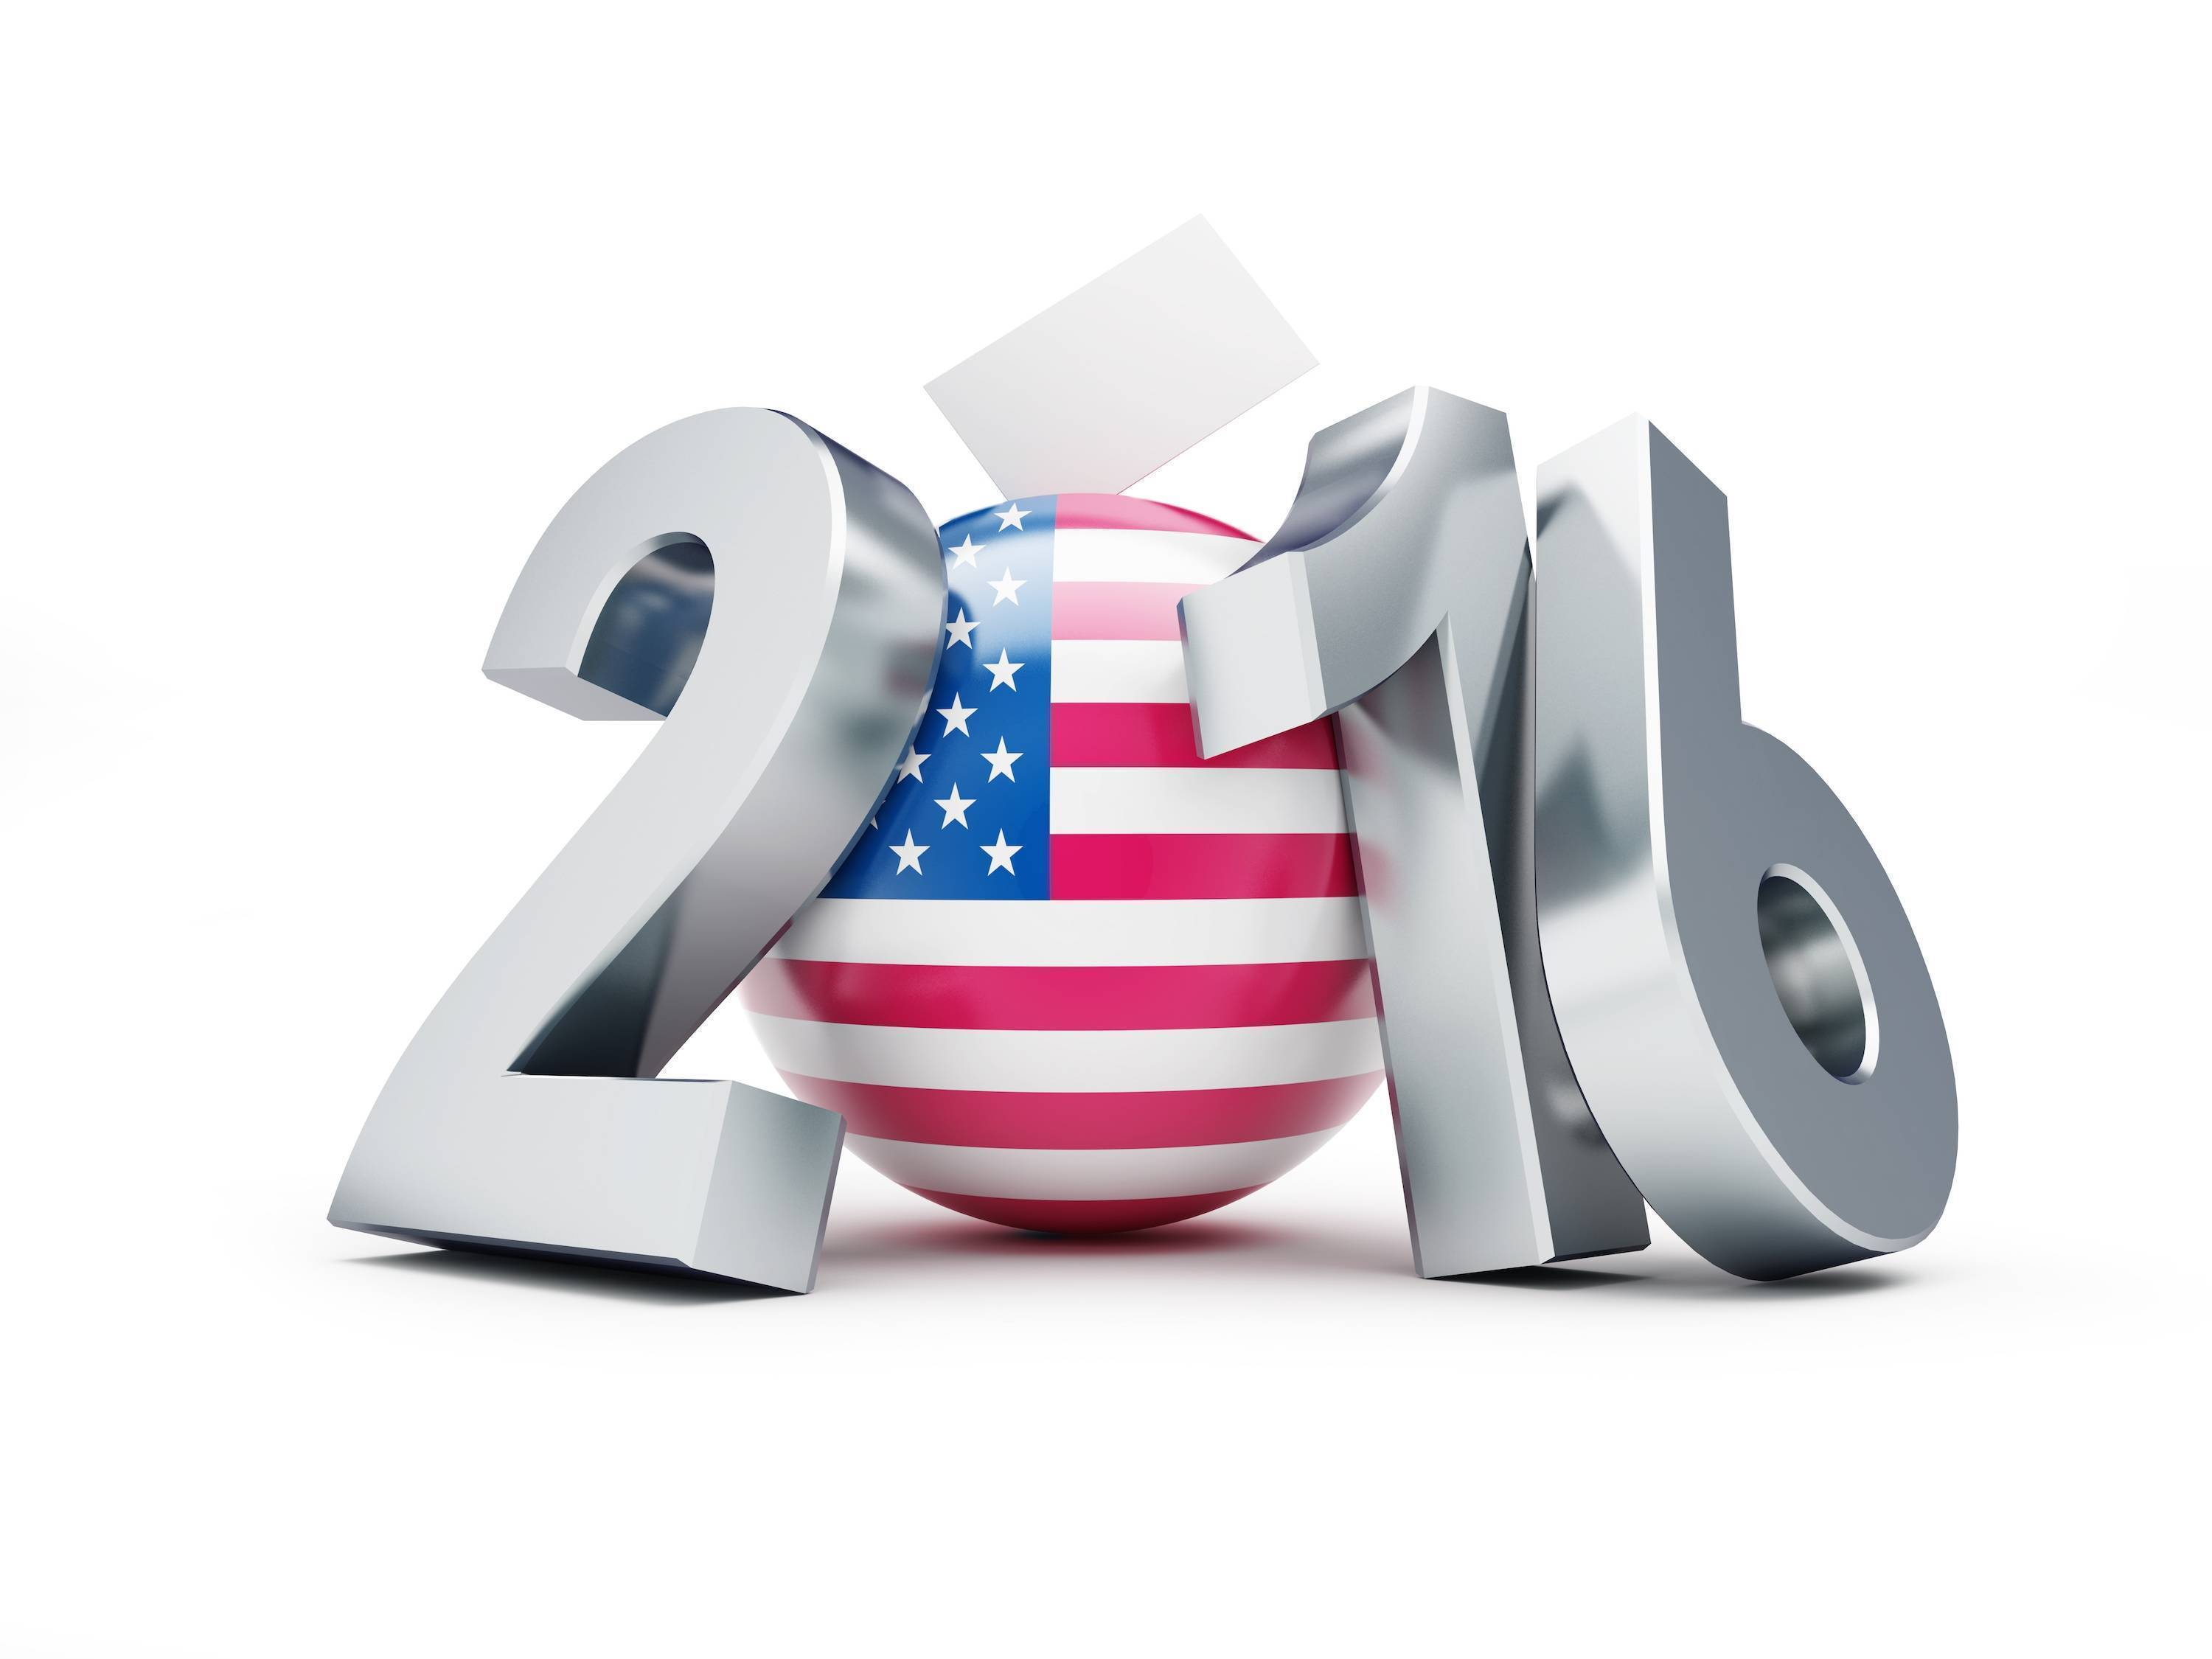 Vote clipart 2016 jpg transparent stock Reminder to Vote Tuesday: Refresh on 2016 Election ... jpg transparent stock